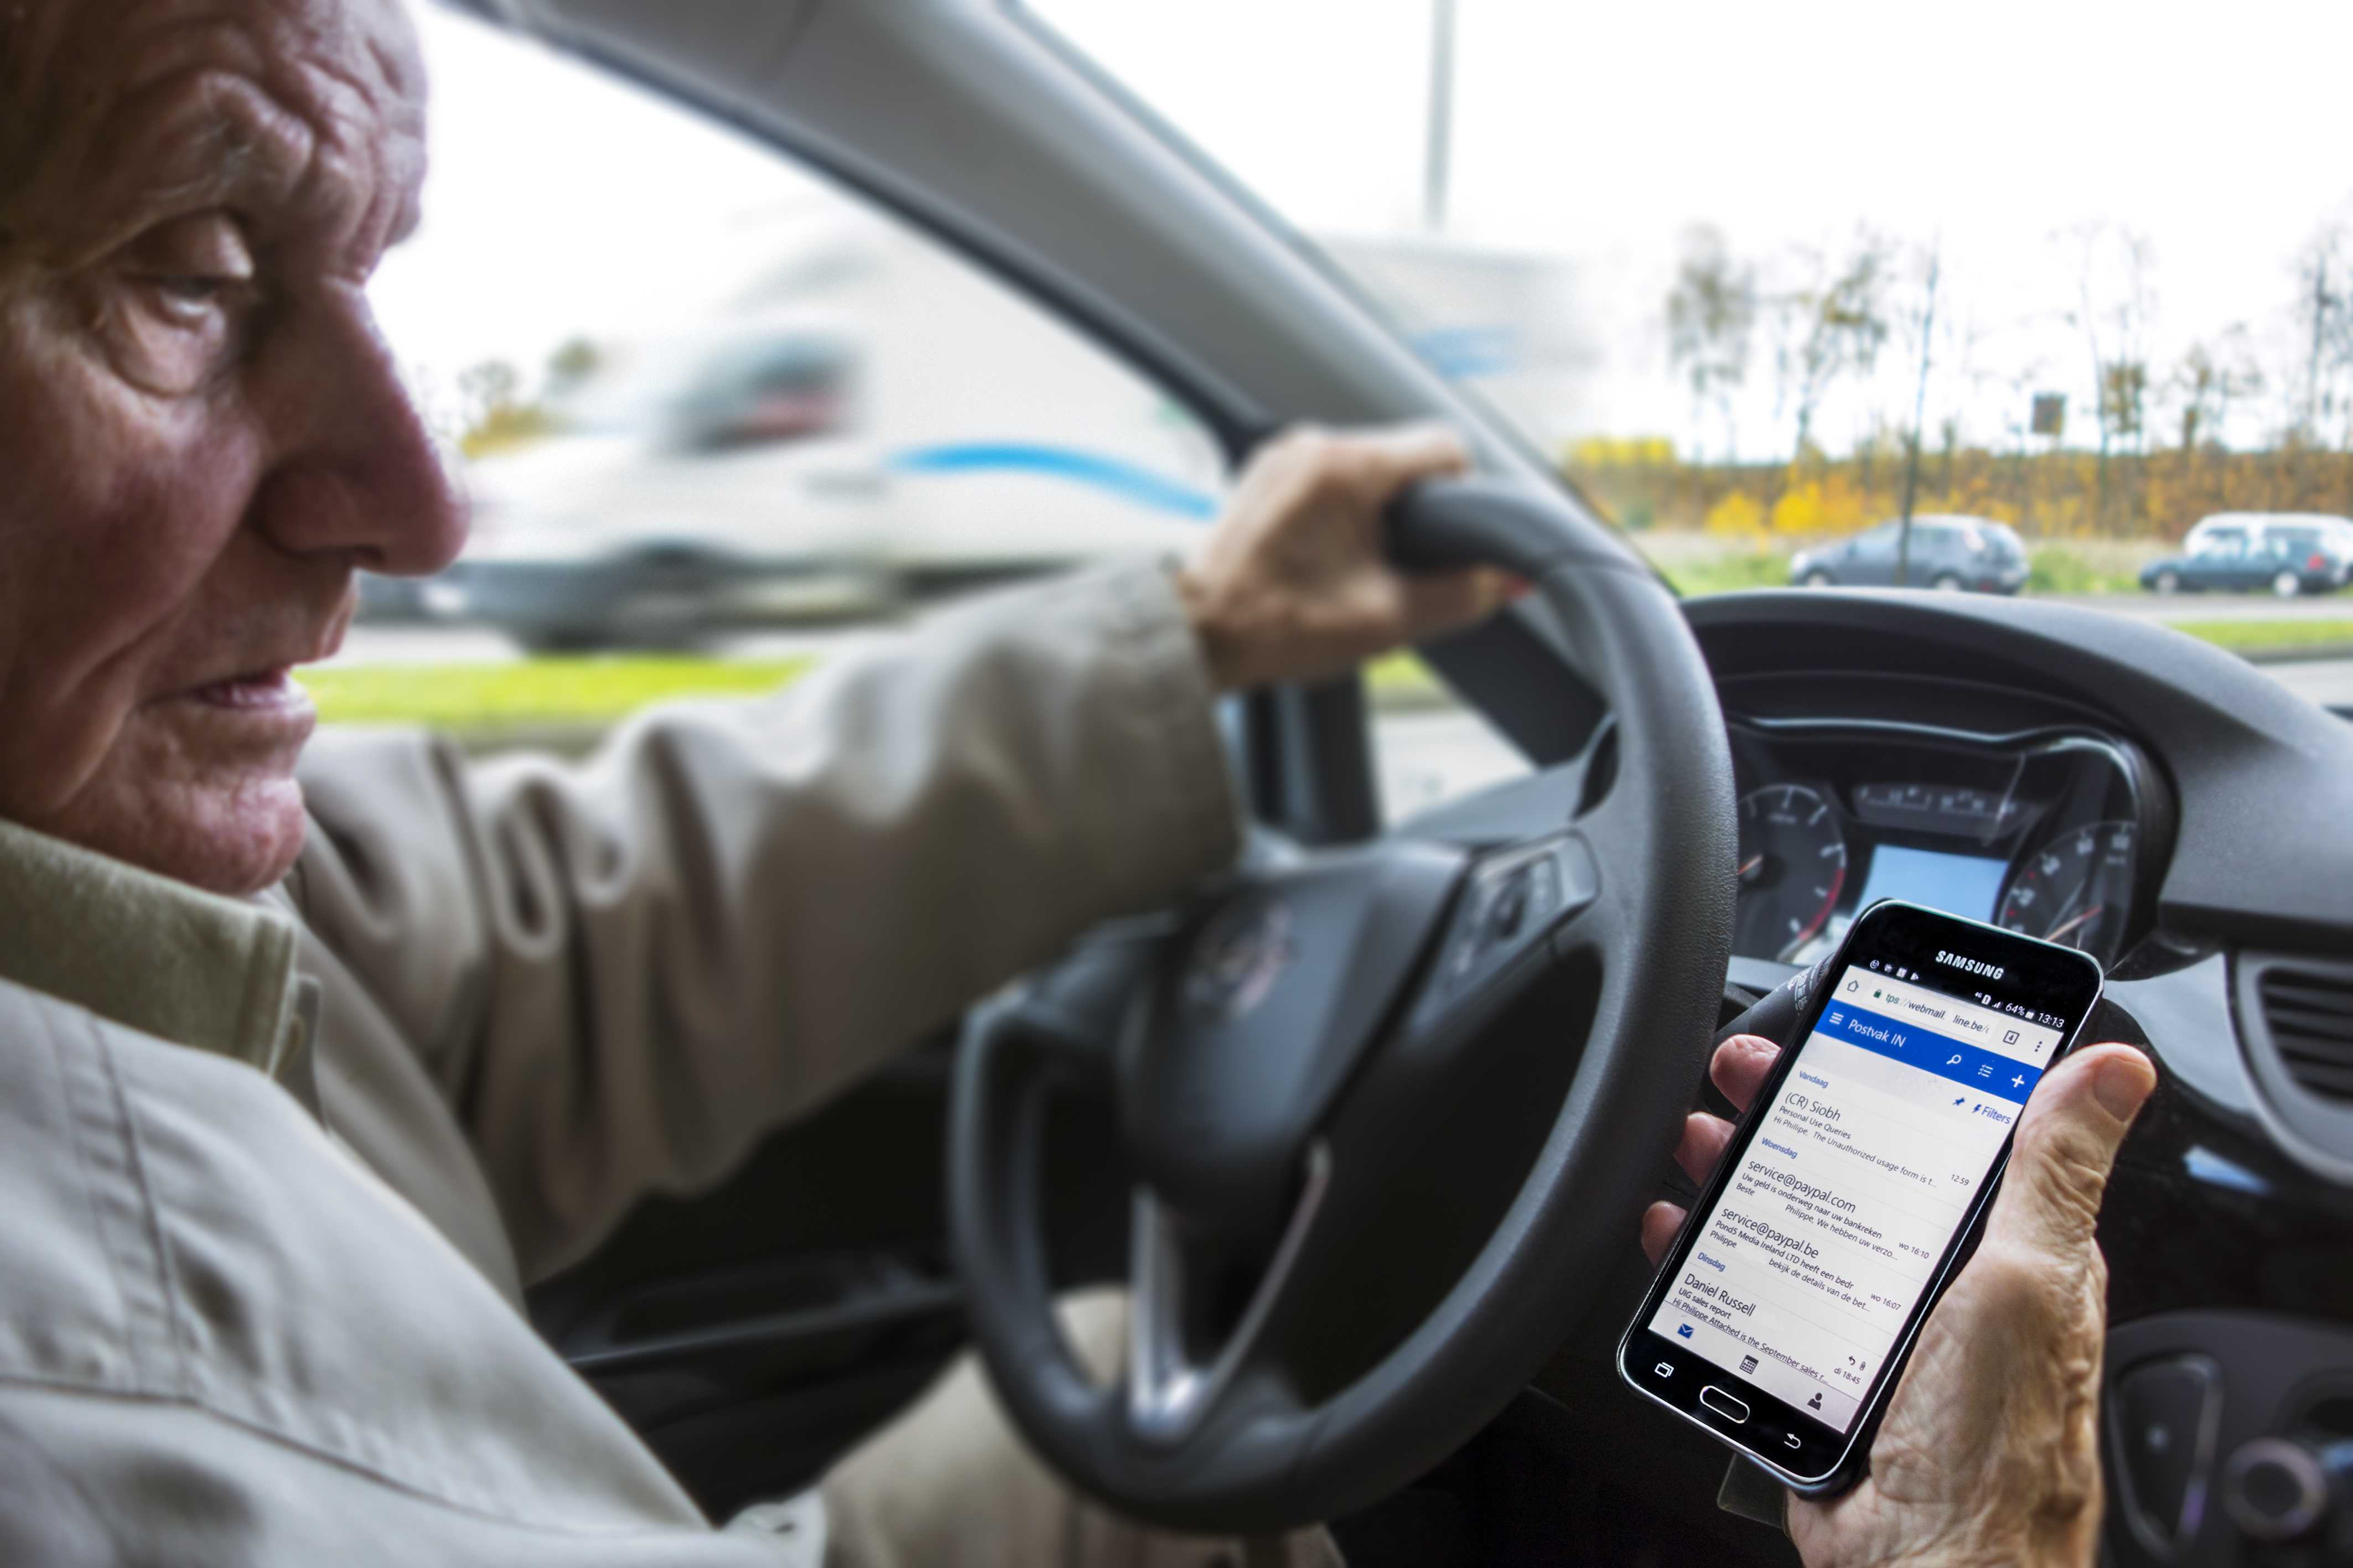 distracted driving rates skyrocket